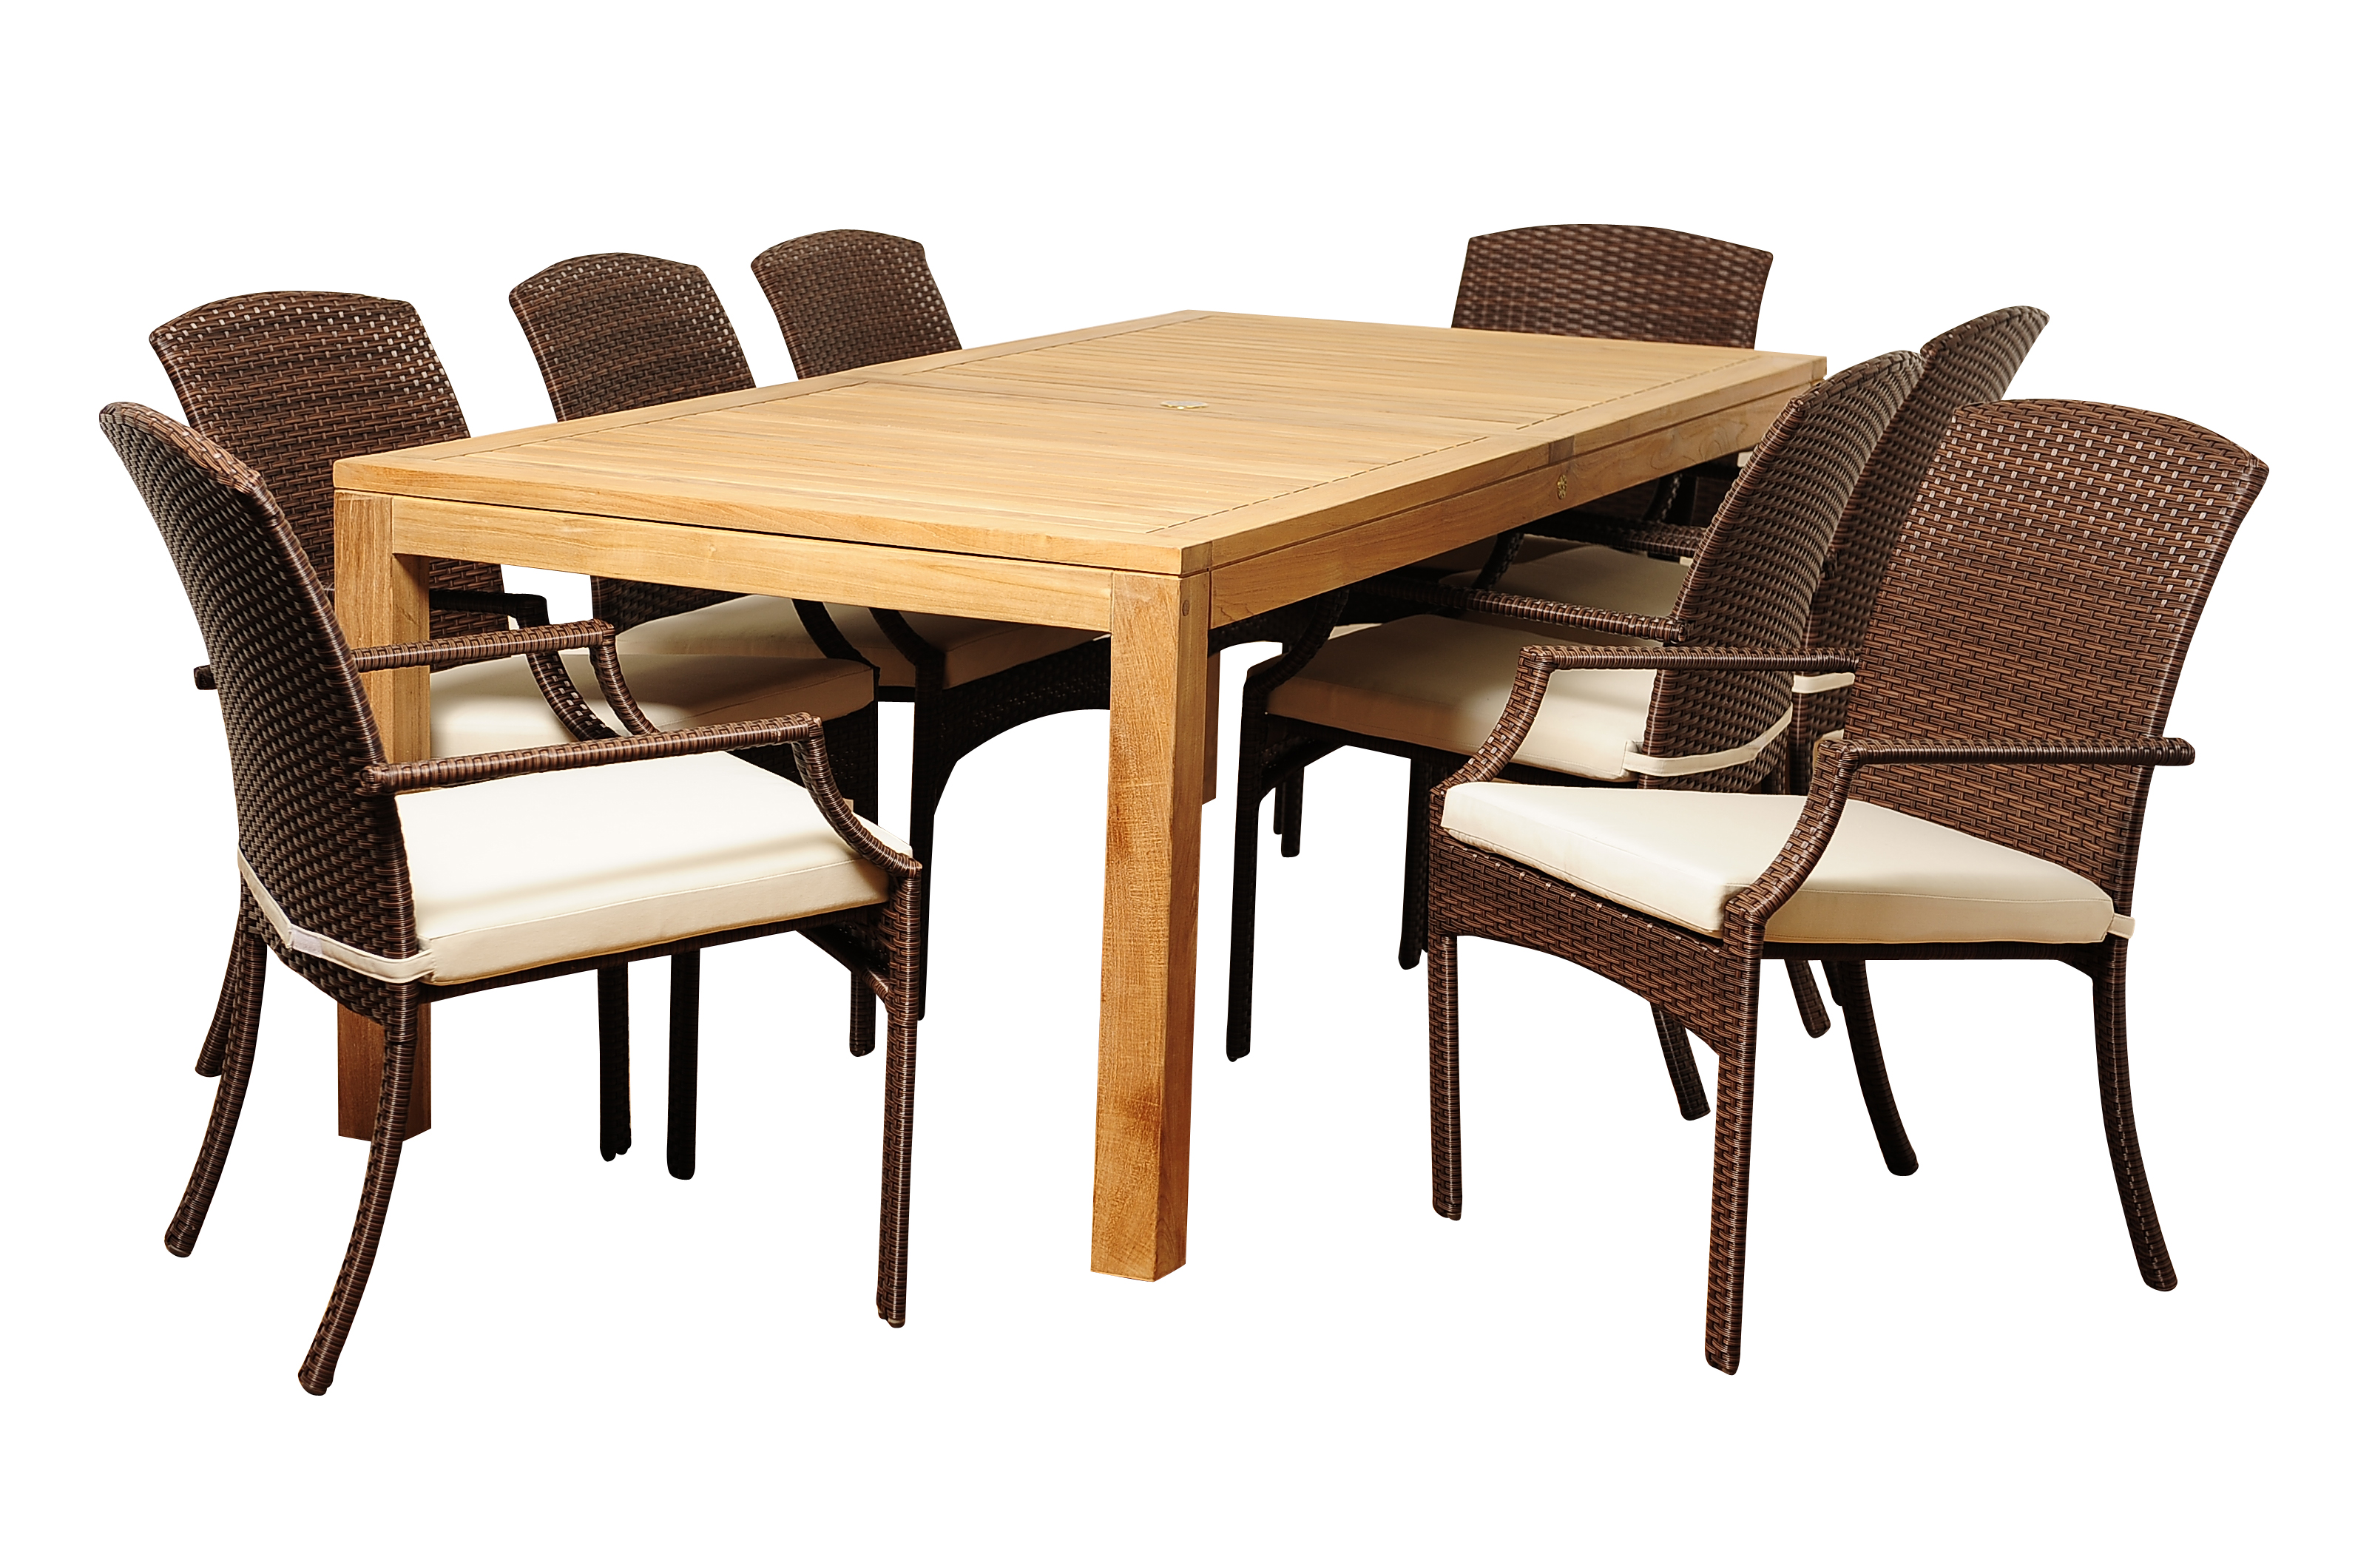 Royce 9 Piece Teak/Wicker Rectangular Dining Set With Off